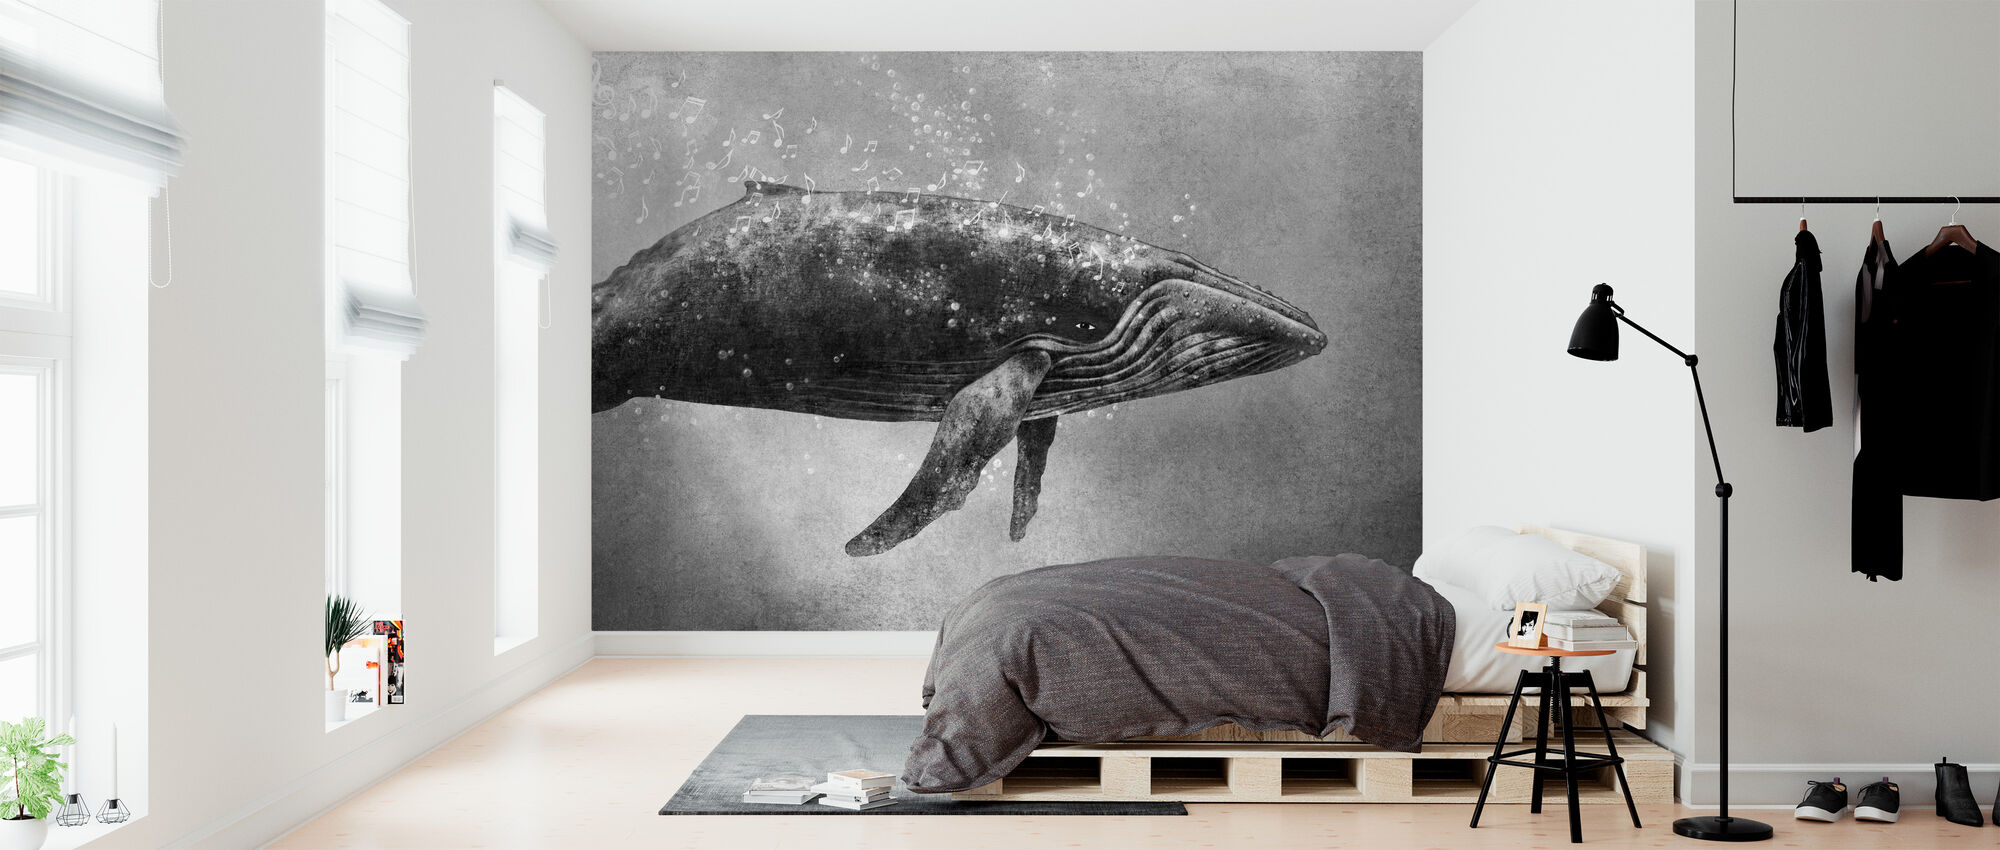 Whale Song - Wallpaper - Bedroom